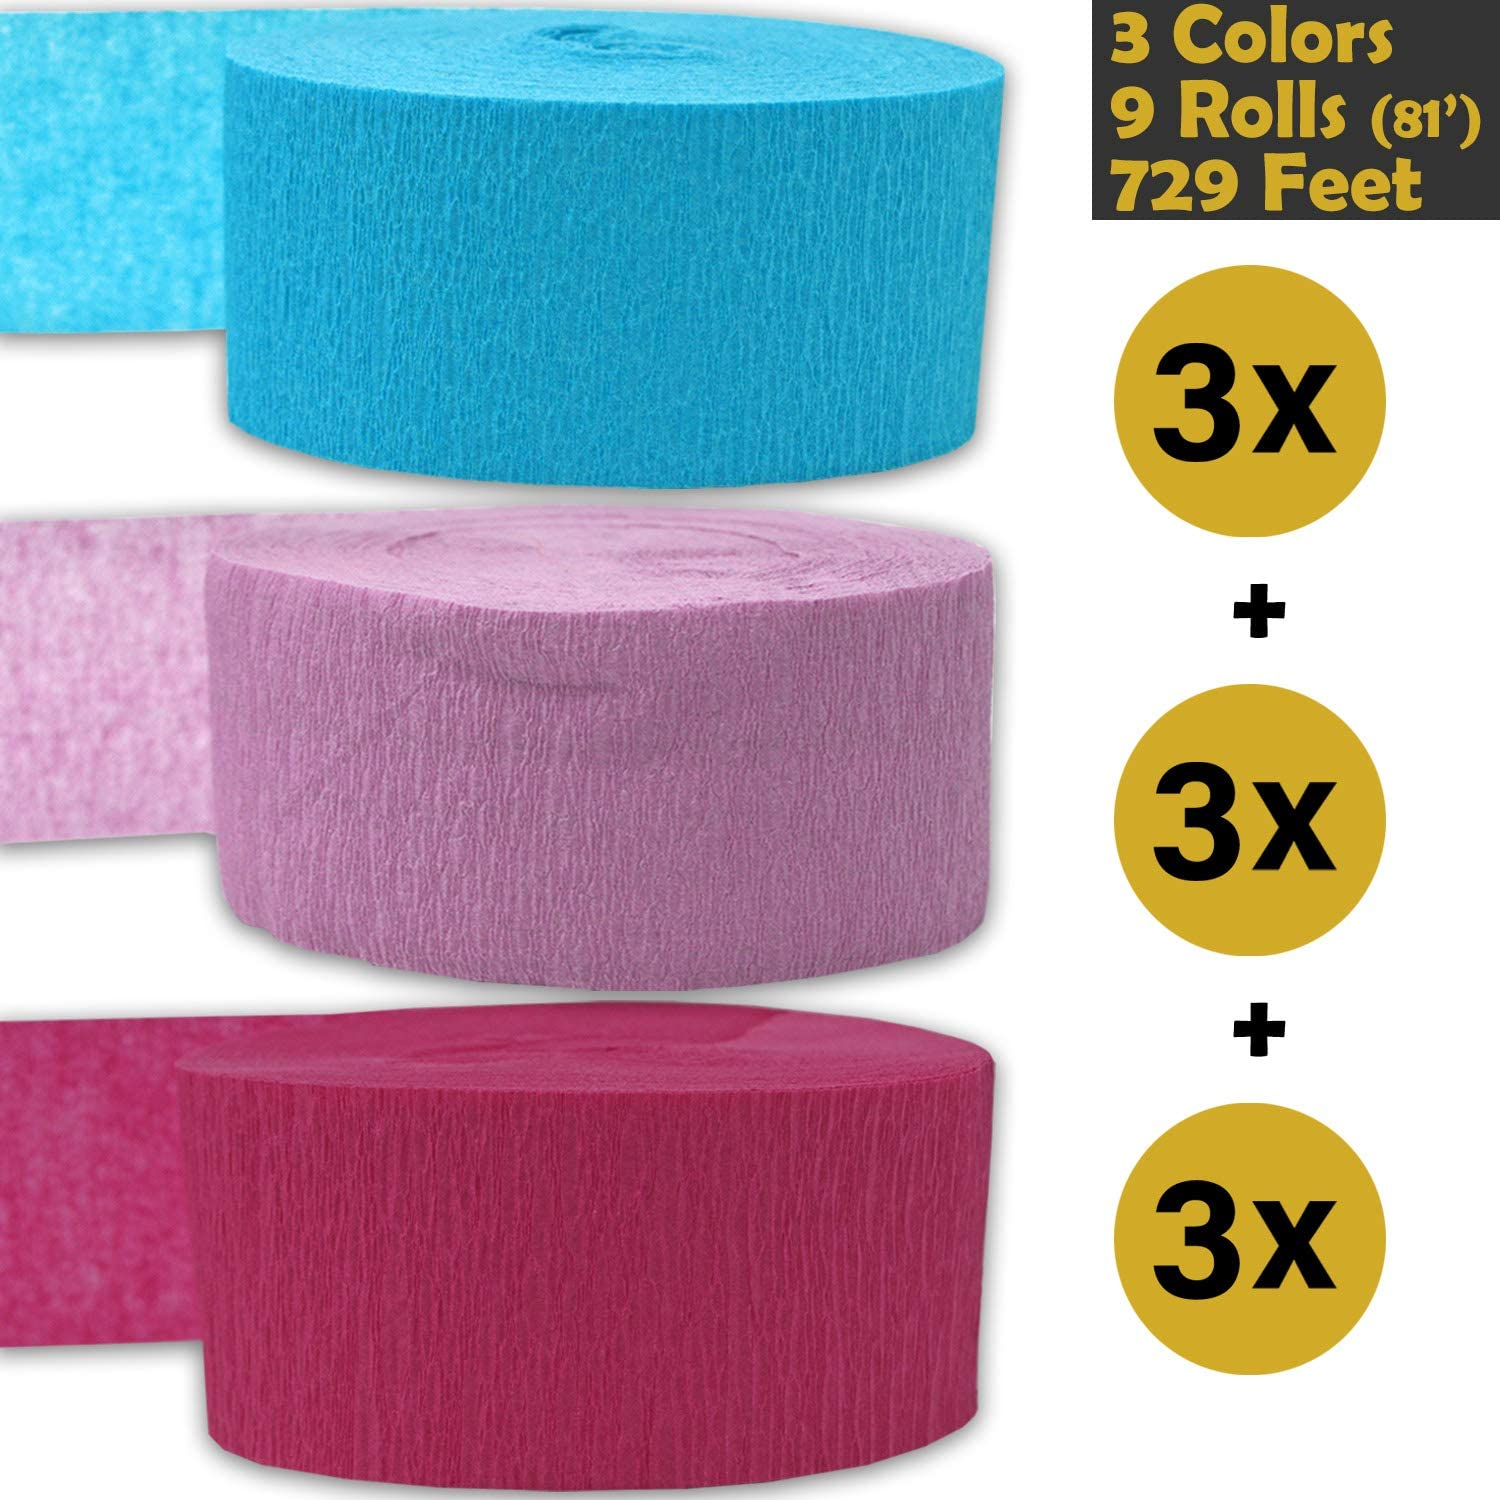 3 Colors 243 per color Made in USA 3 rolls per color, 81 foot each roll Black Golden Yellow Flame Resistant - For party Decorations and Crafts Crepe Party Streamers Sangria Bleed Resistant 9 rolls 739 ft